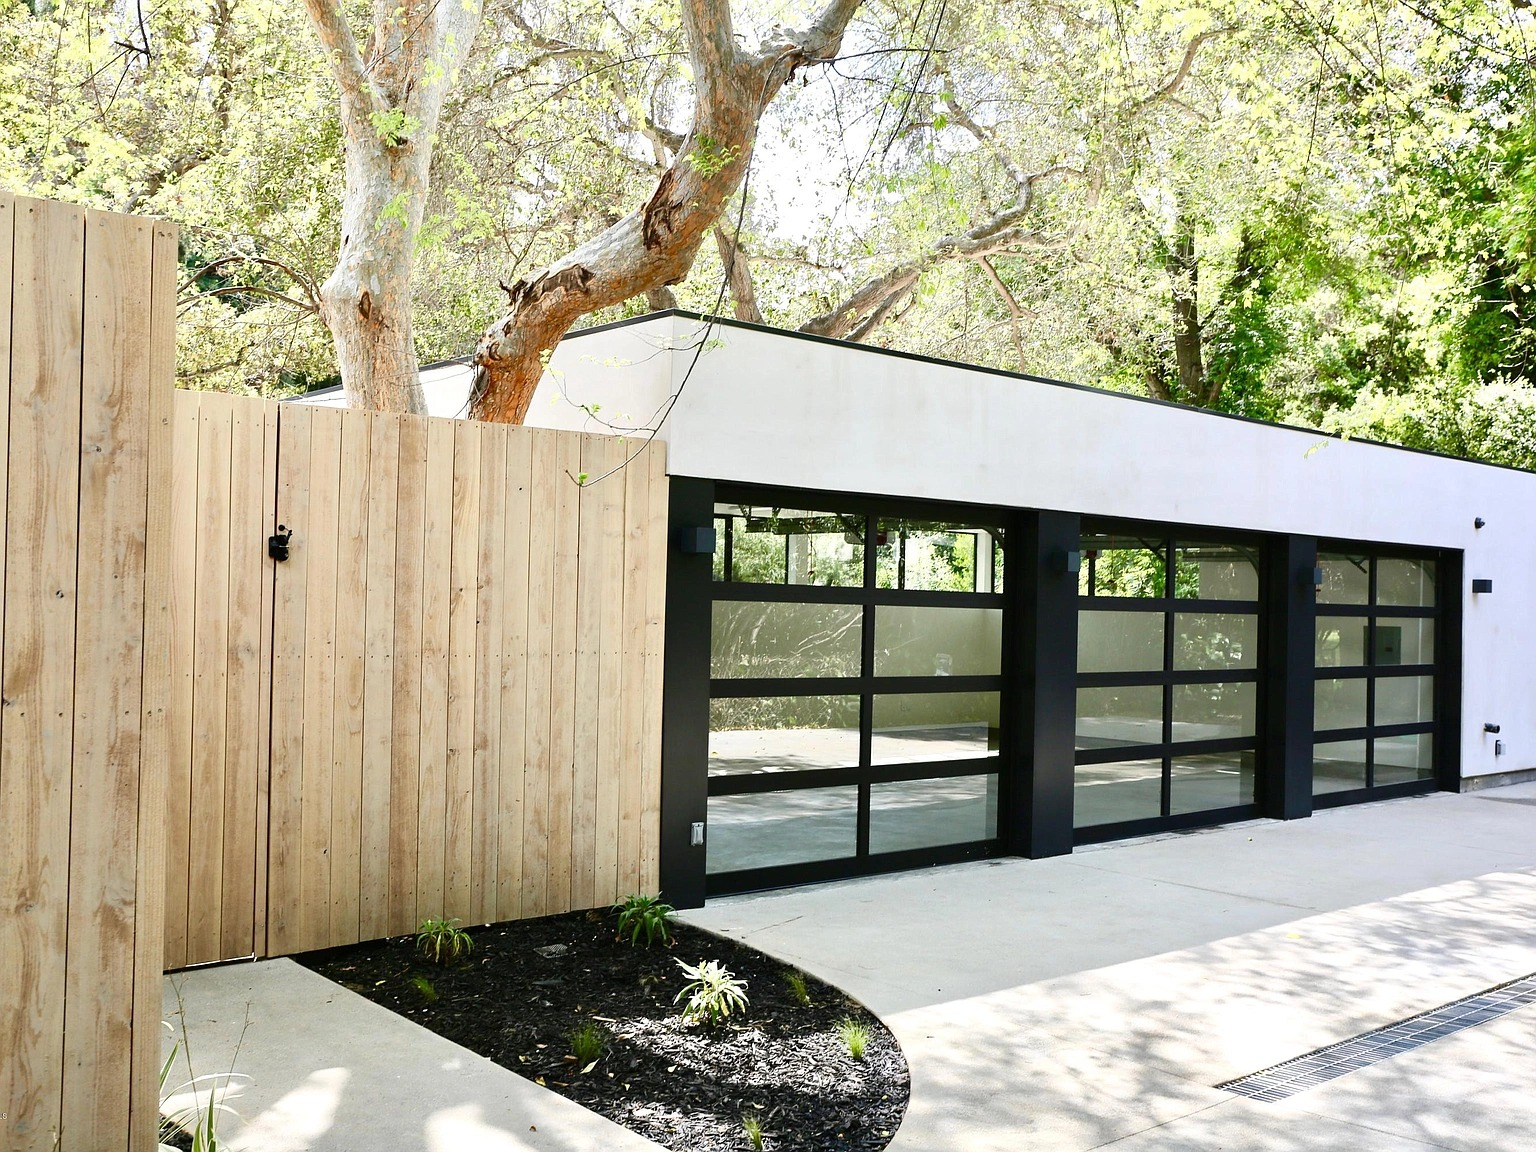 505 Laguna Rd, Pasadena, CA 91105 - $4,988,000 home for sale, house images, photos and pics gallery